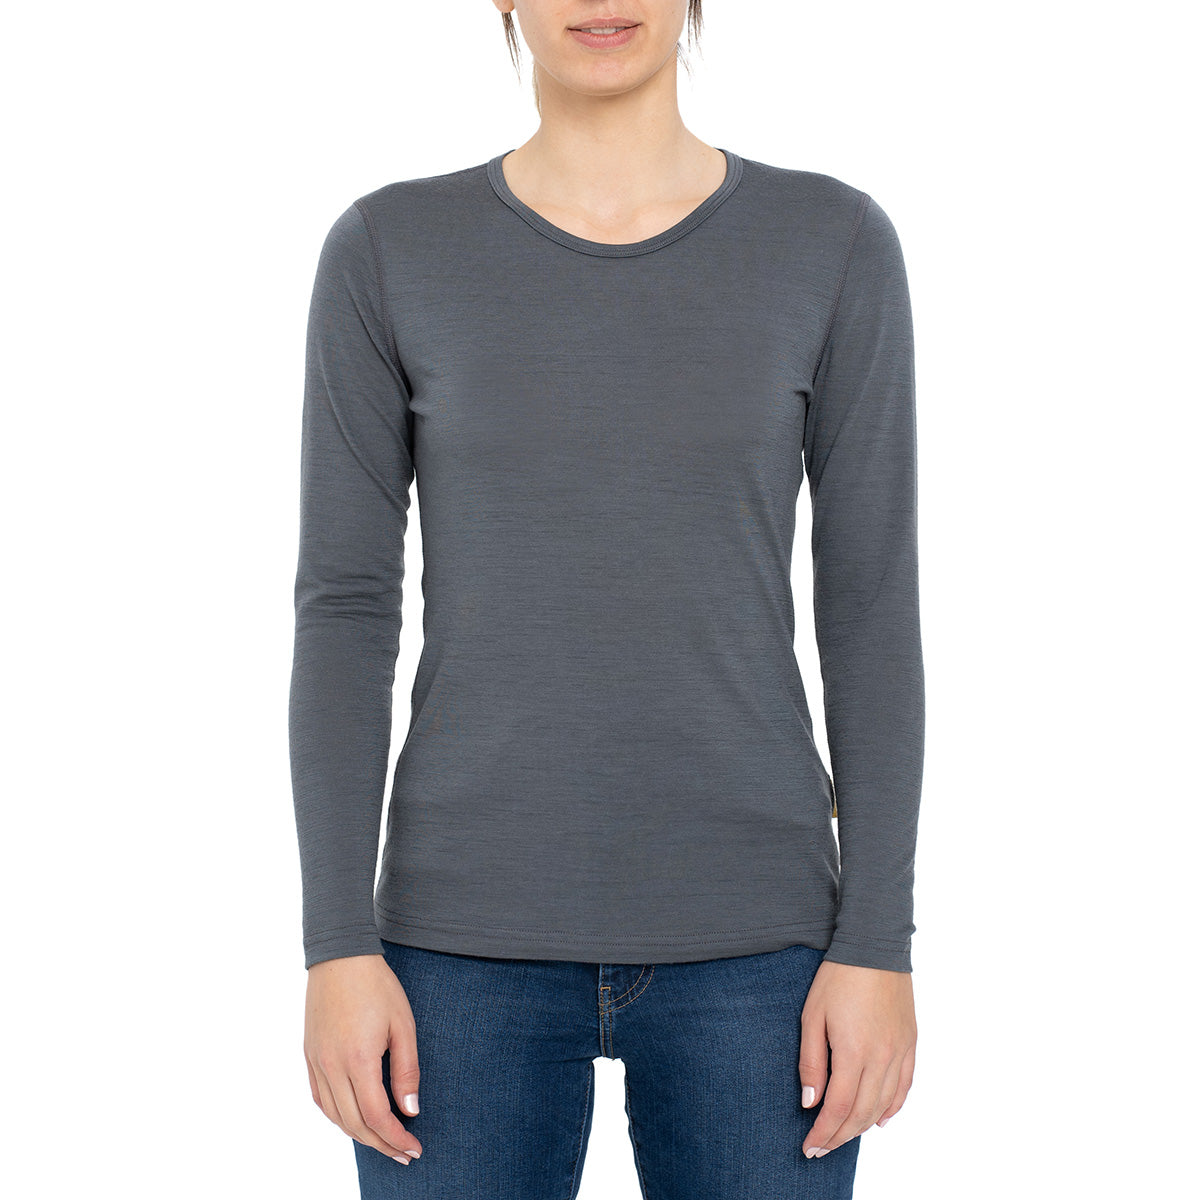 menique Women's Merino 160 Long Sleeve Crew Perfect Grey Color